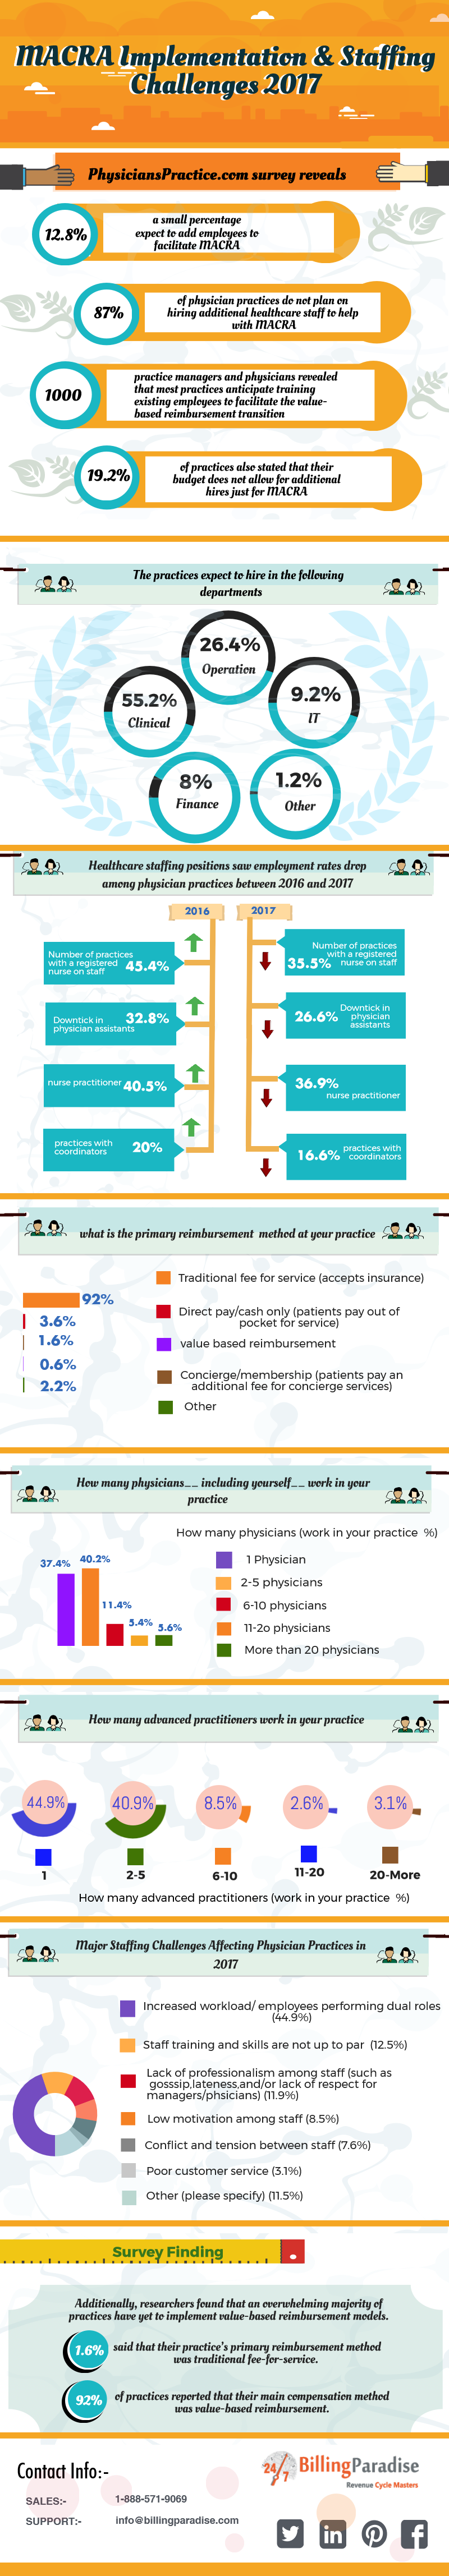 in-house billing vs outsource